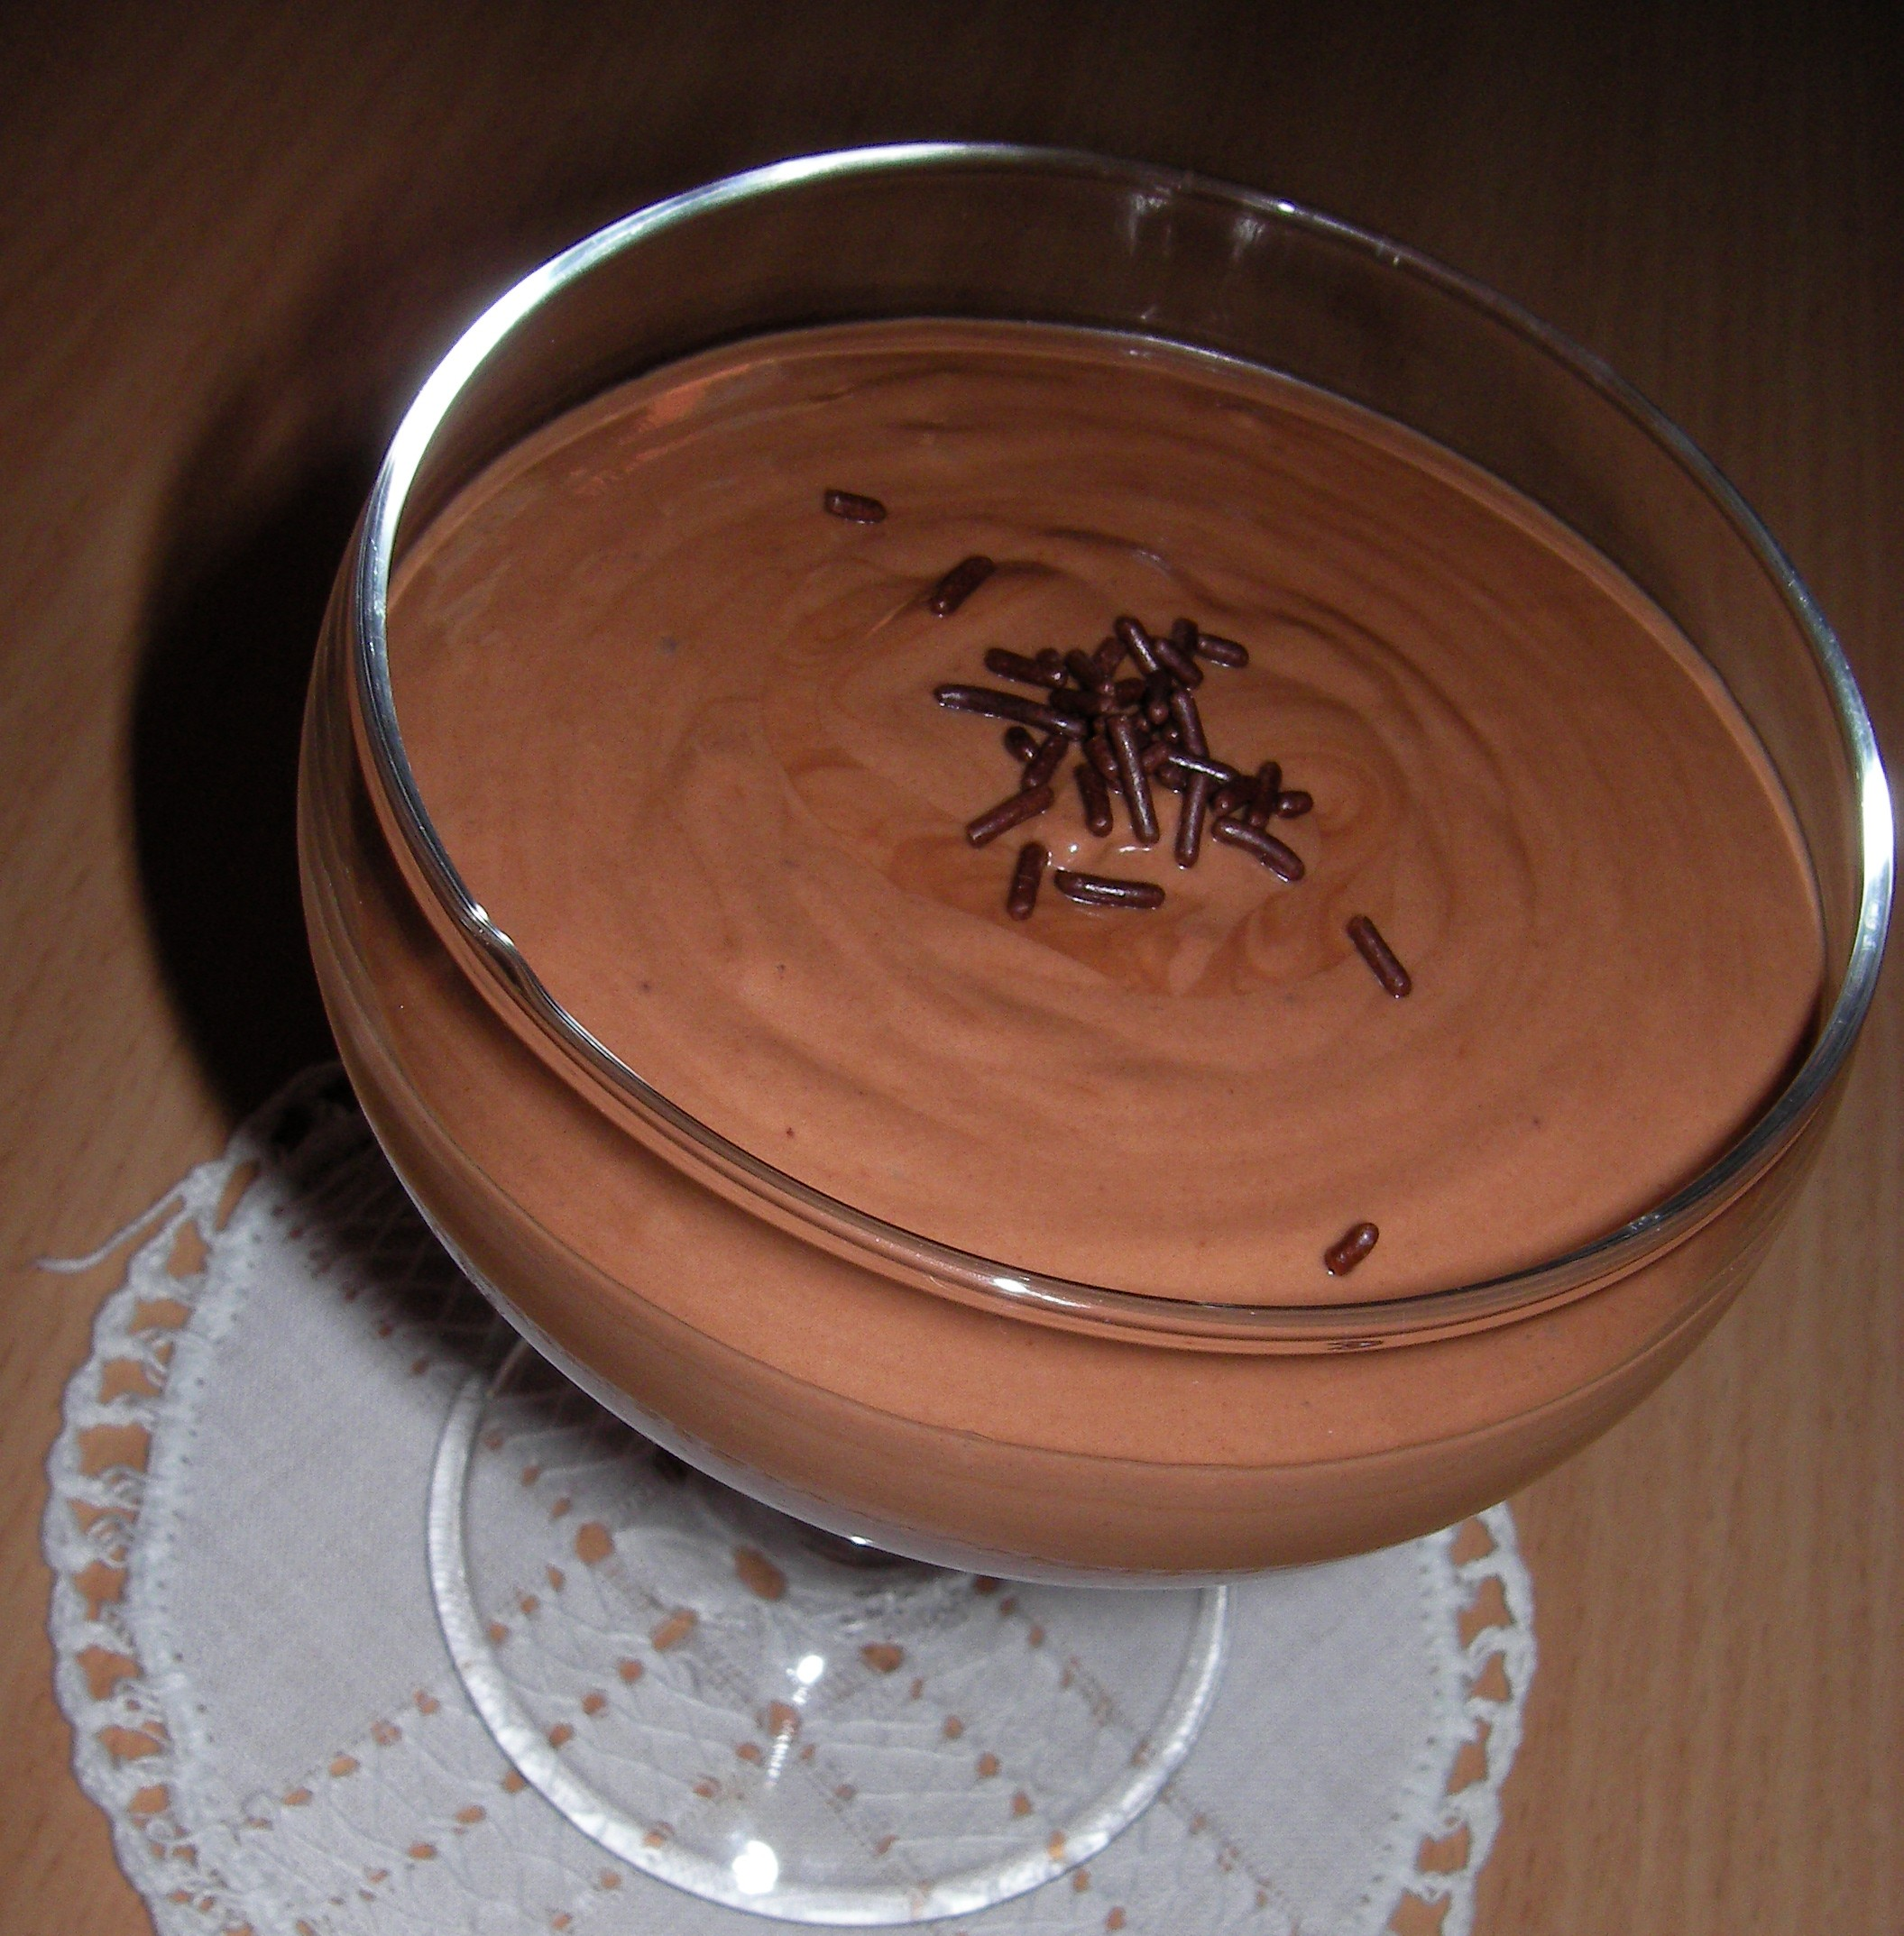 Mousse-de-chocolate-e1341434414760